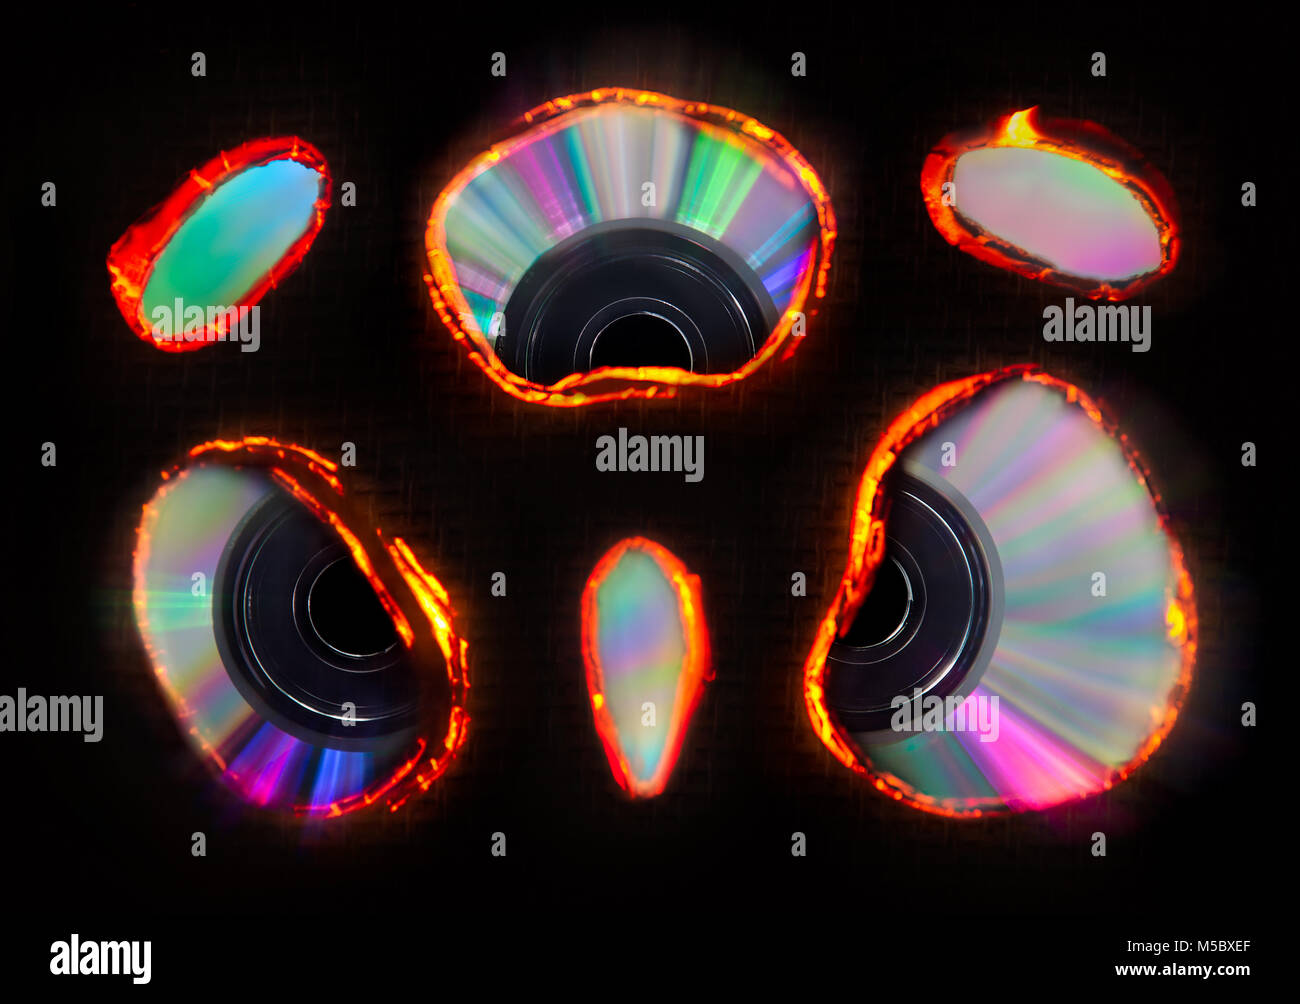 compact disc - Stock Image